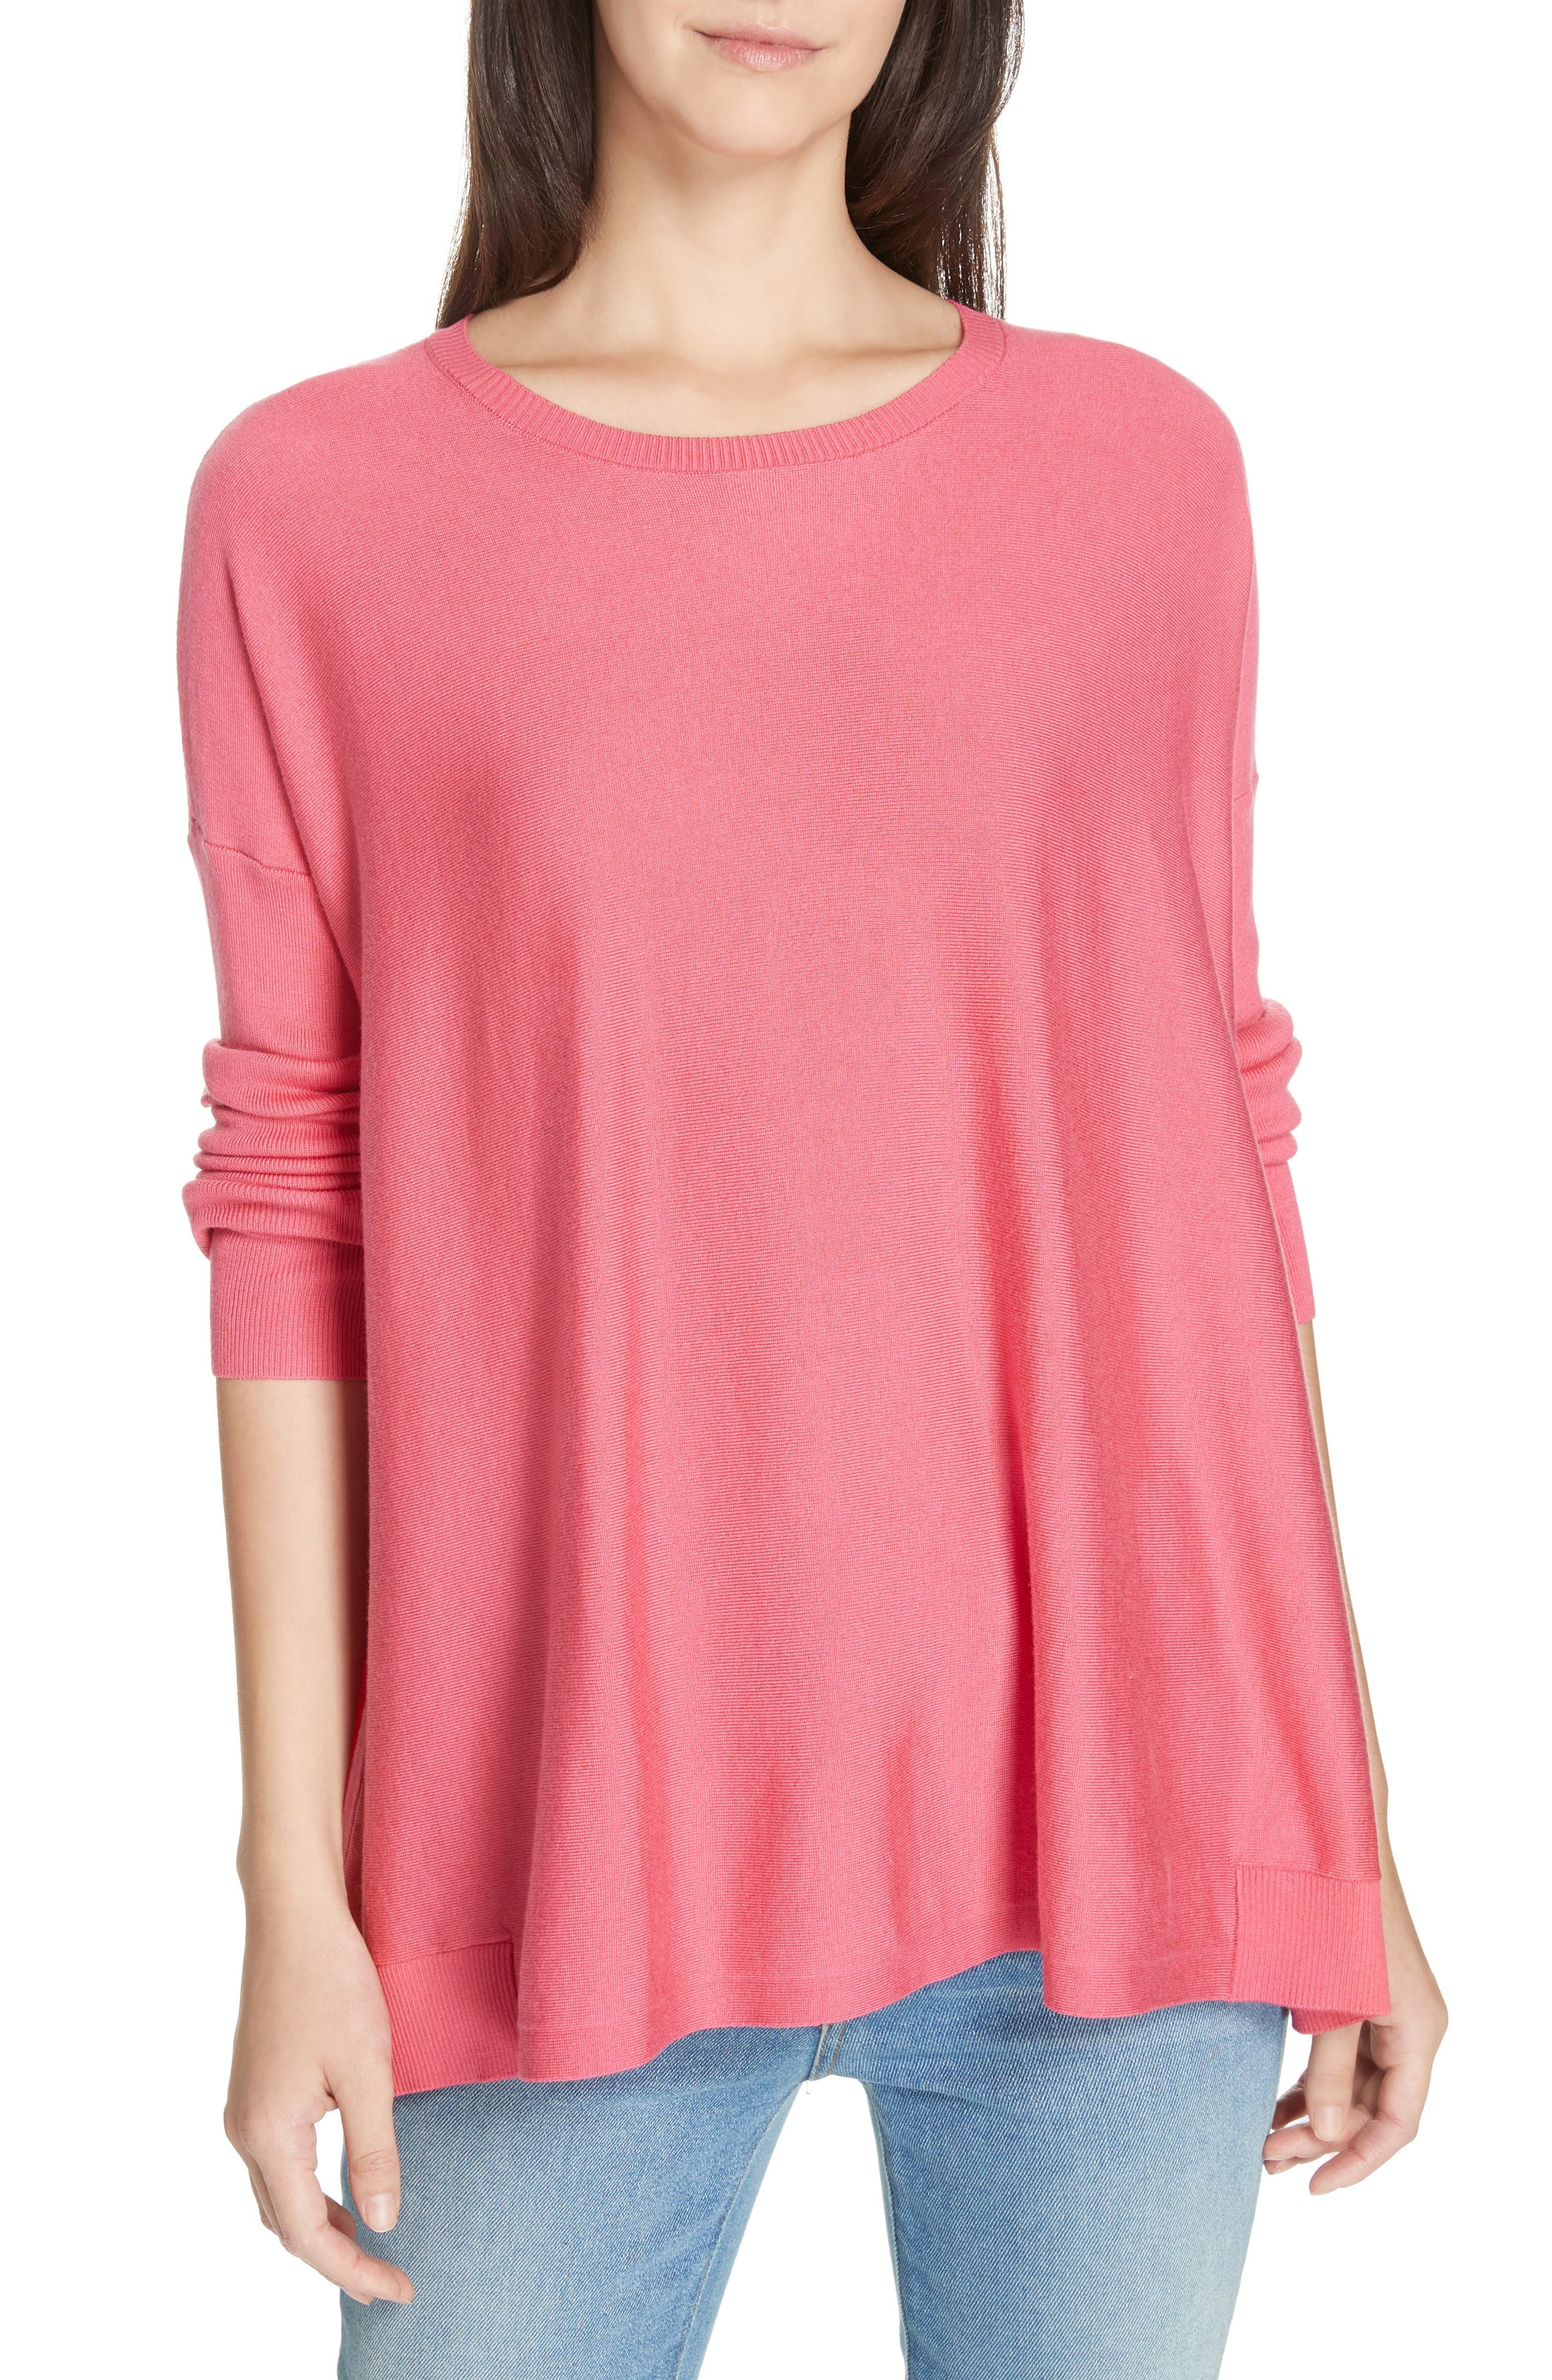 Tencel<sup>®</sup> Lyocell Blend Sweater, Main, color, CHERRY LANE